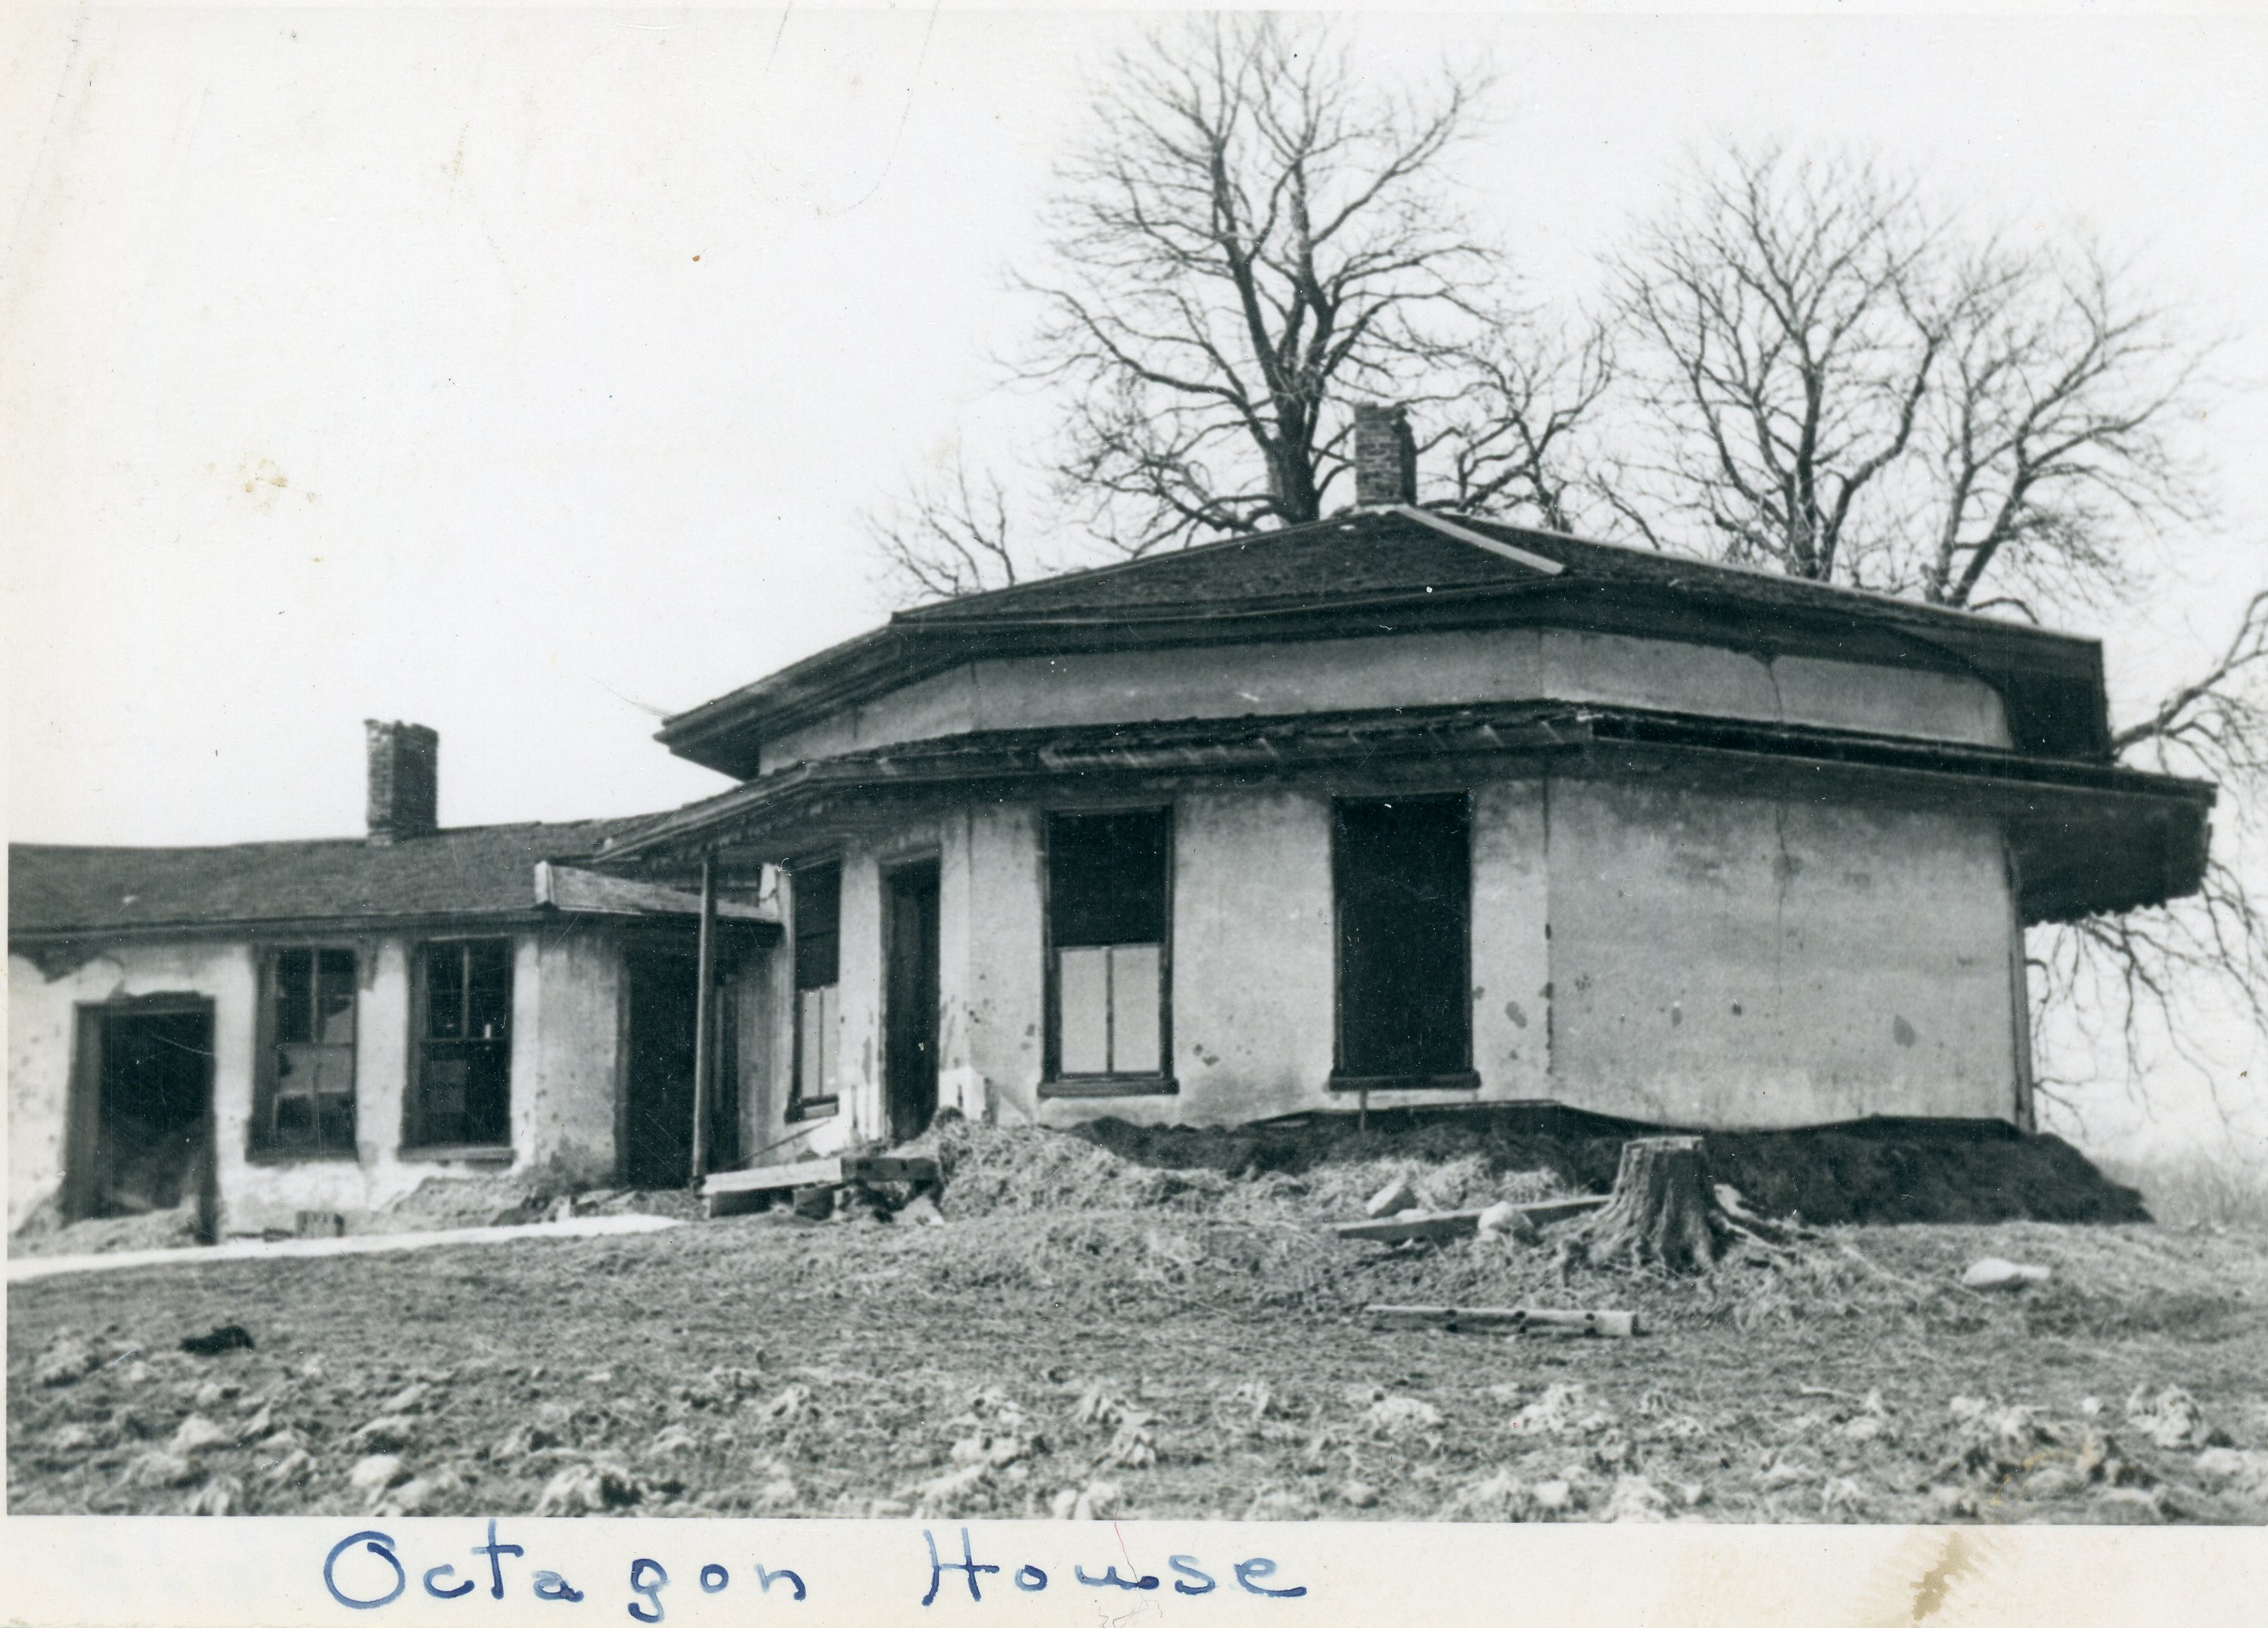 Image of octagonal house in town of York, Livingston County